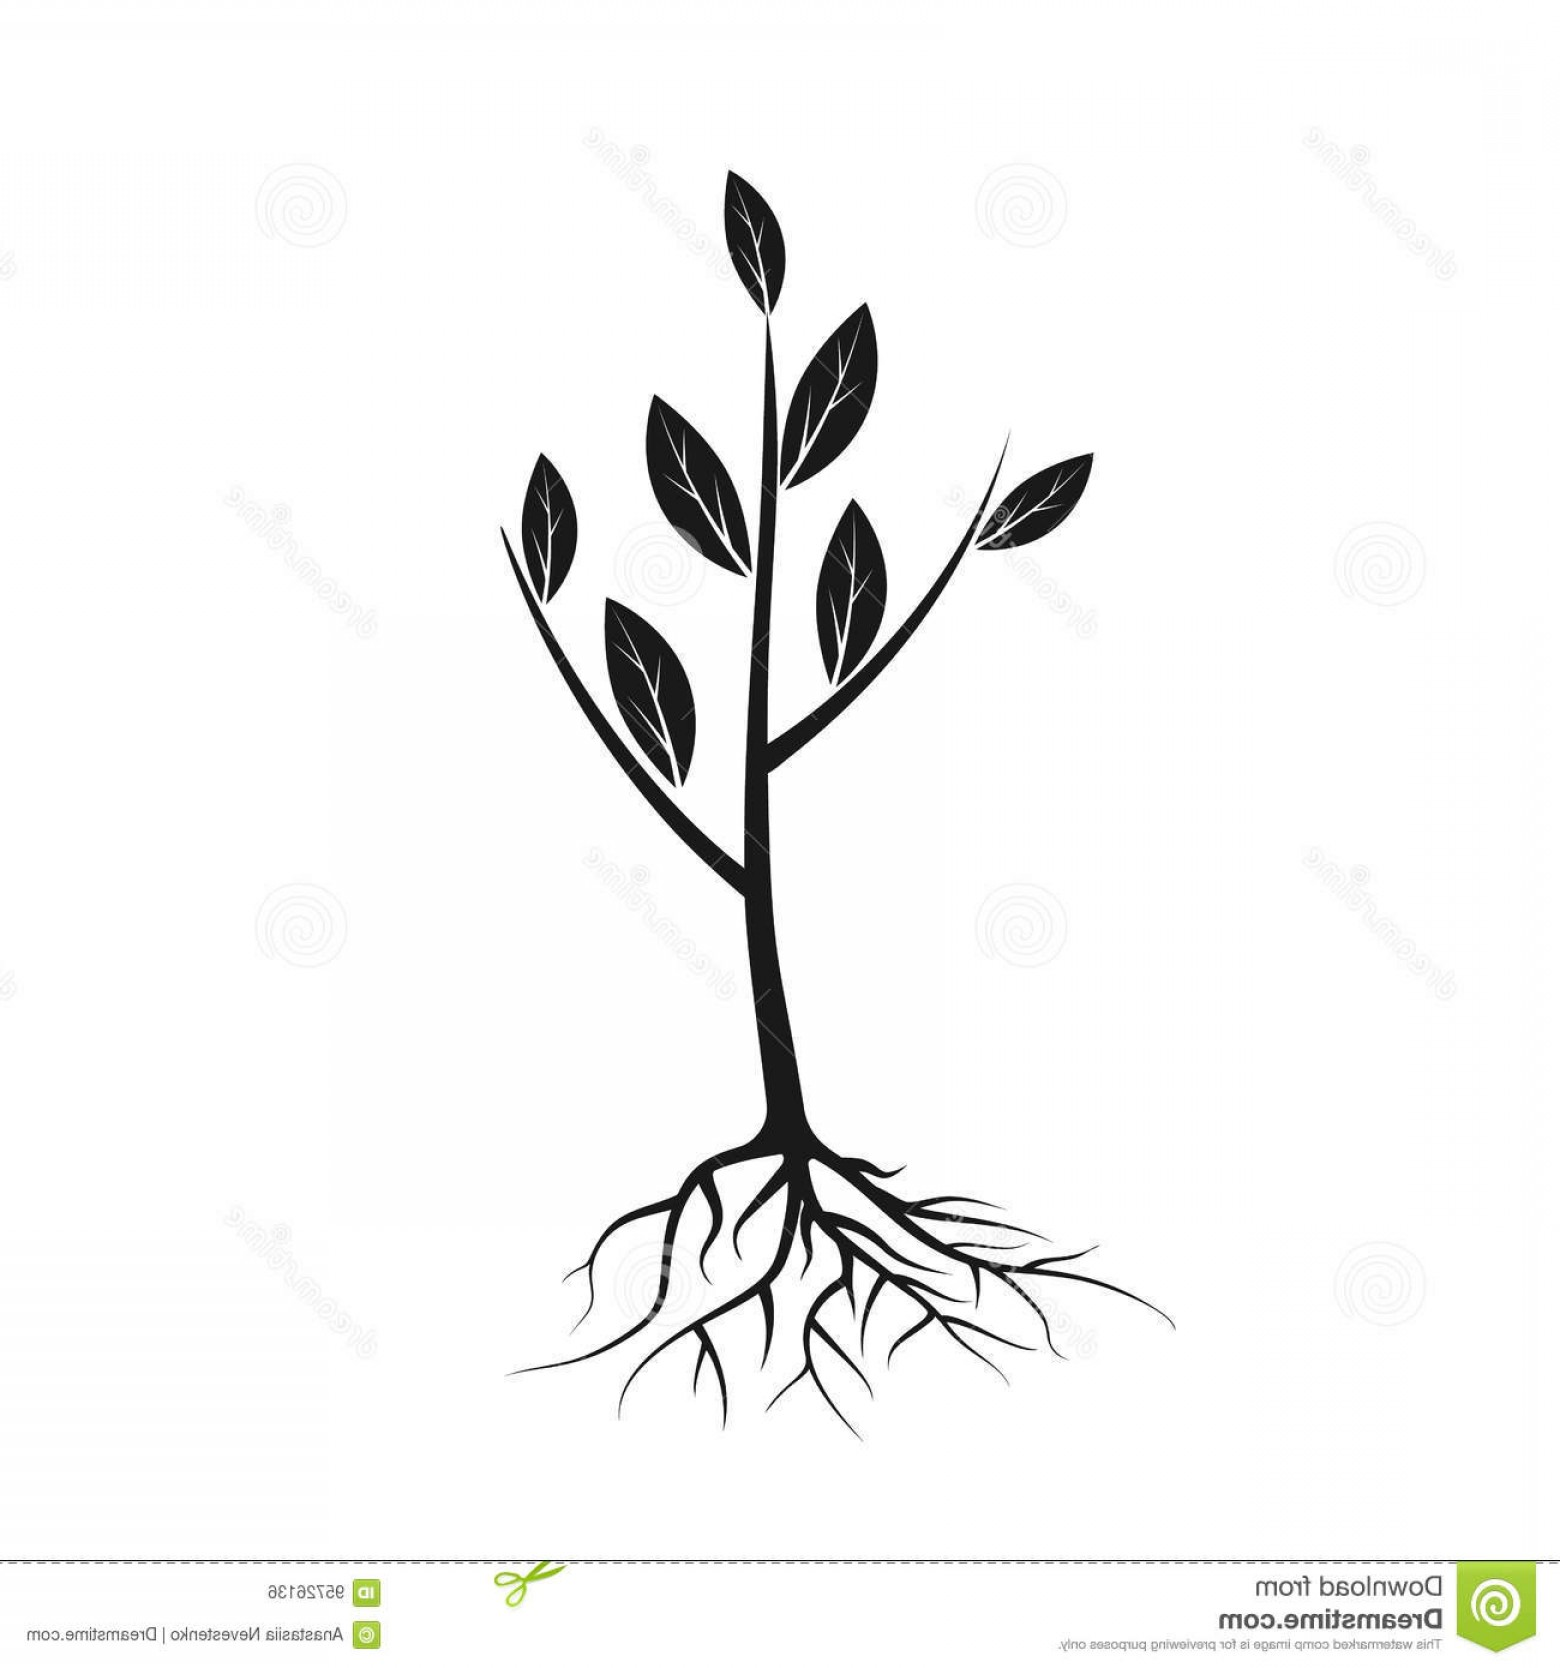 Sapling Vector Tree Silhouette Art: Stock Illustration Tree Icon Black Roots Leaves Young Sapling Ready Planting Planting Greenery Concept Gardening Agriculture New Image